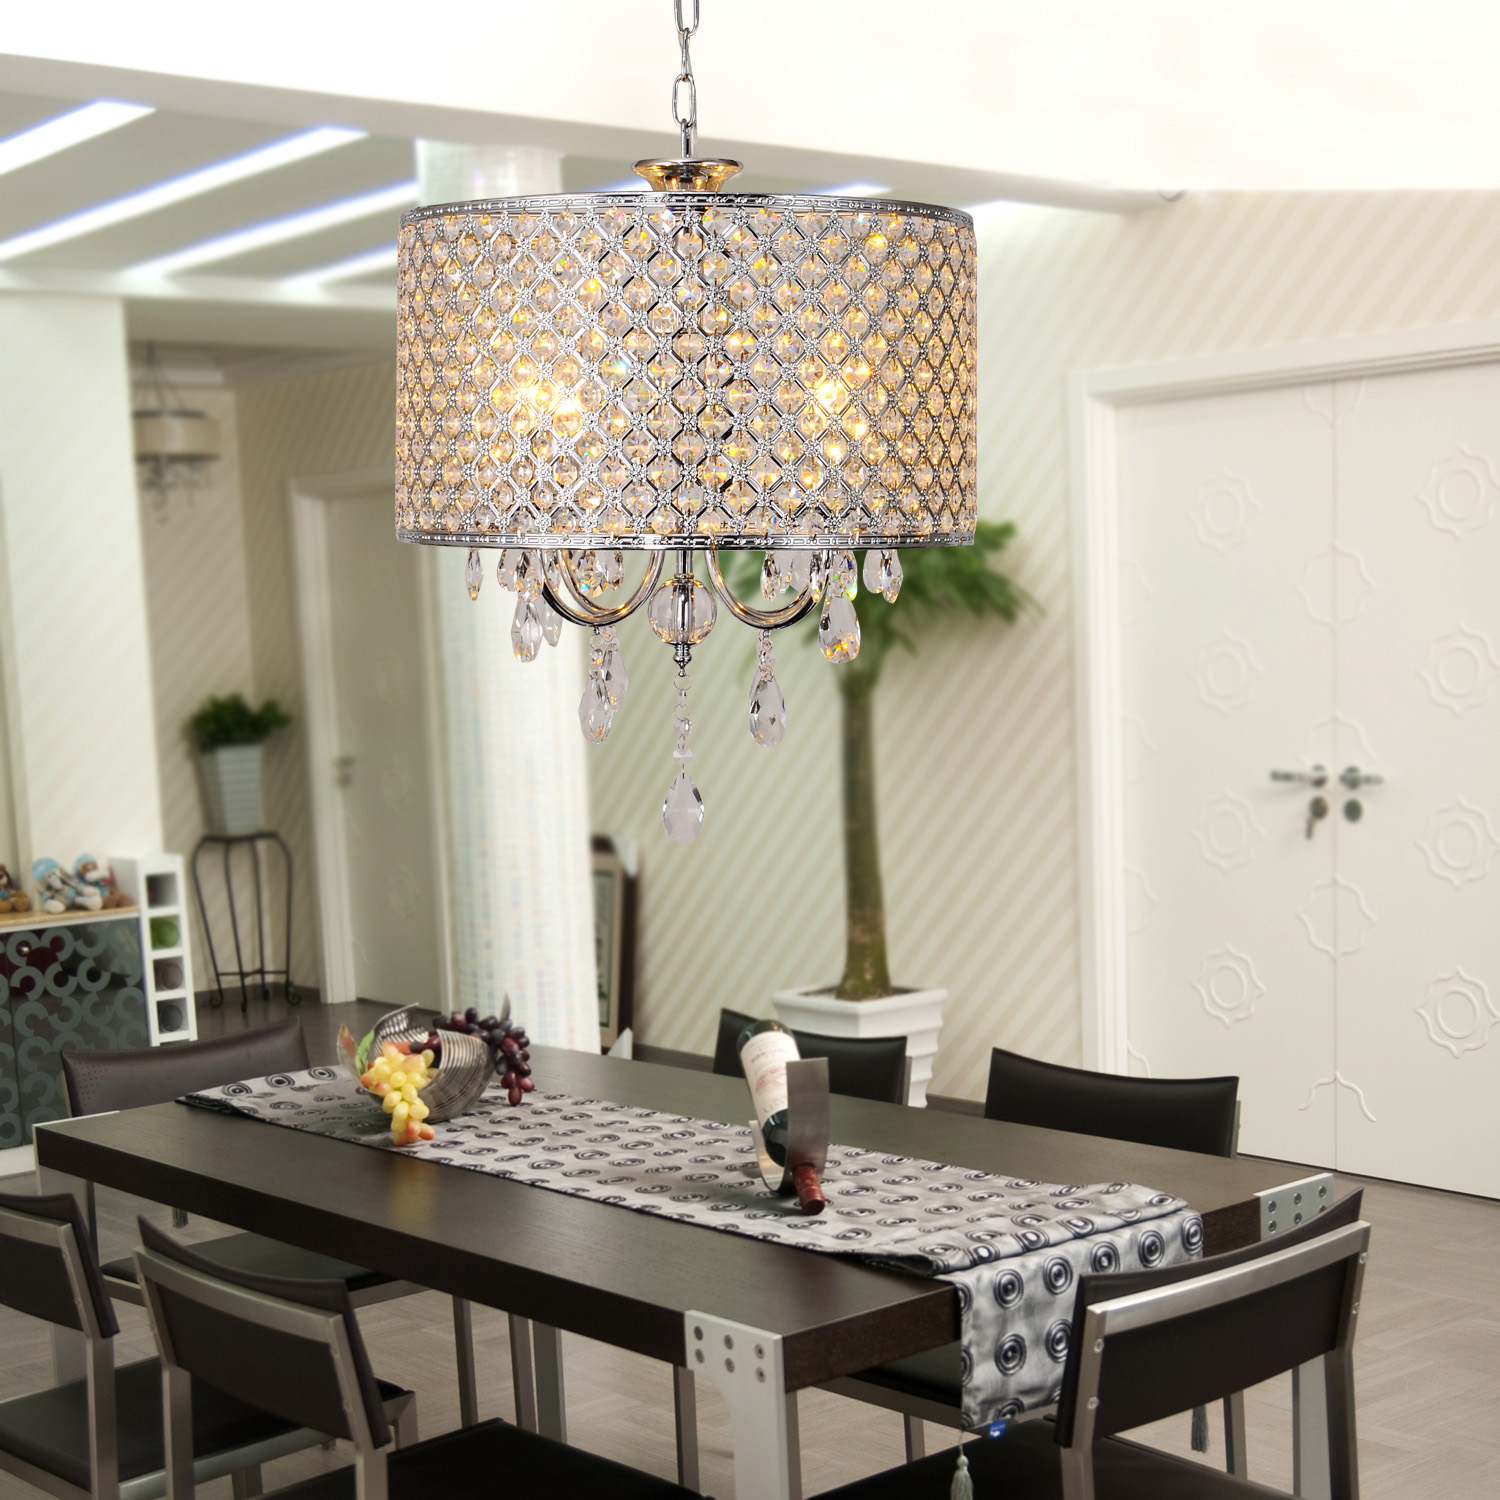 Modern Pendant Ceiling Light Crystal Lighting Dining